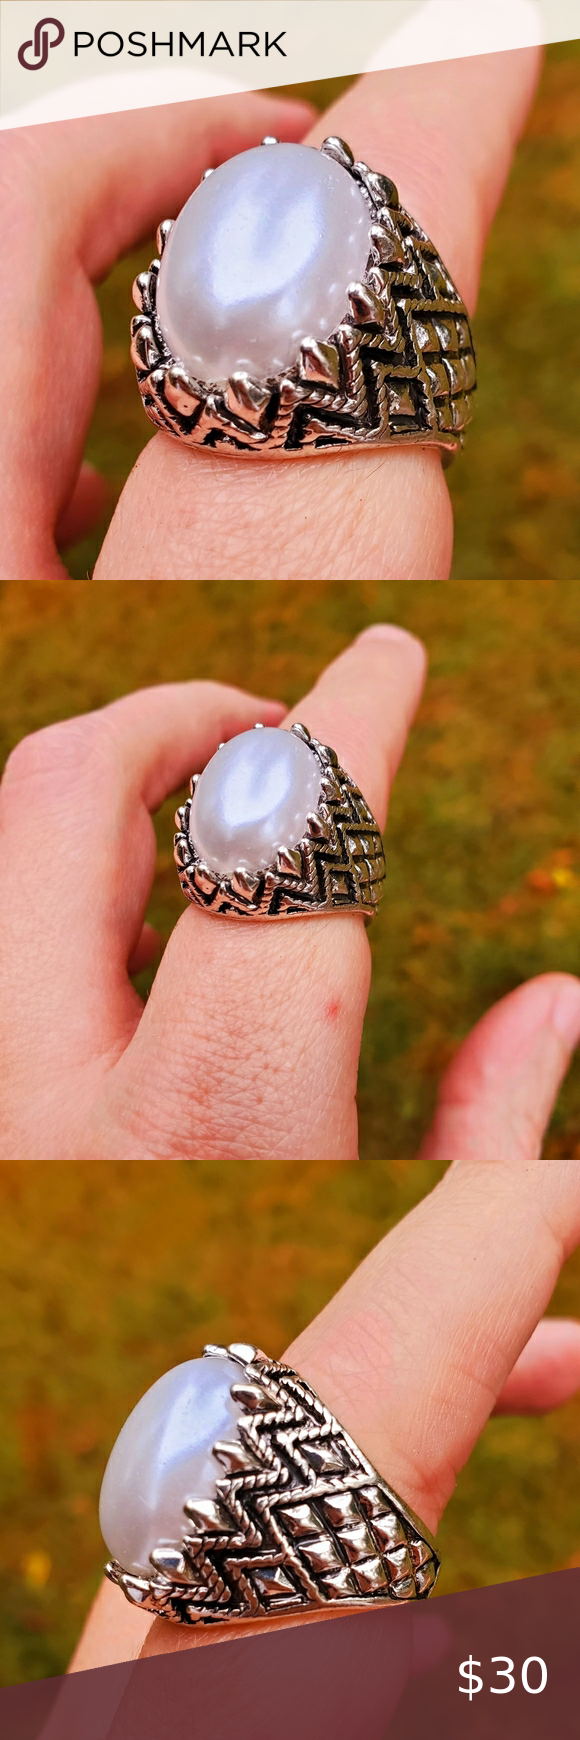 Check out this listing I just found on Poshmark: Eagles Egg Pearl Silver Gothic Ring Size 7.5. #shopmycloset #poshmark #shopping #style #pinitforlater #Jewelry